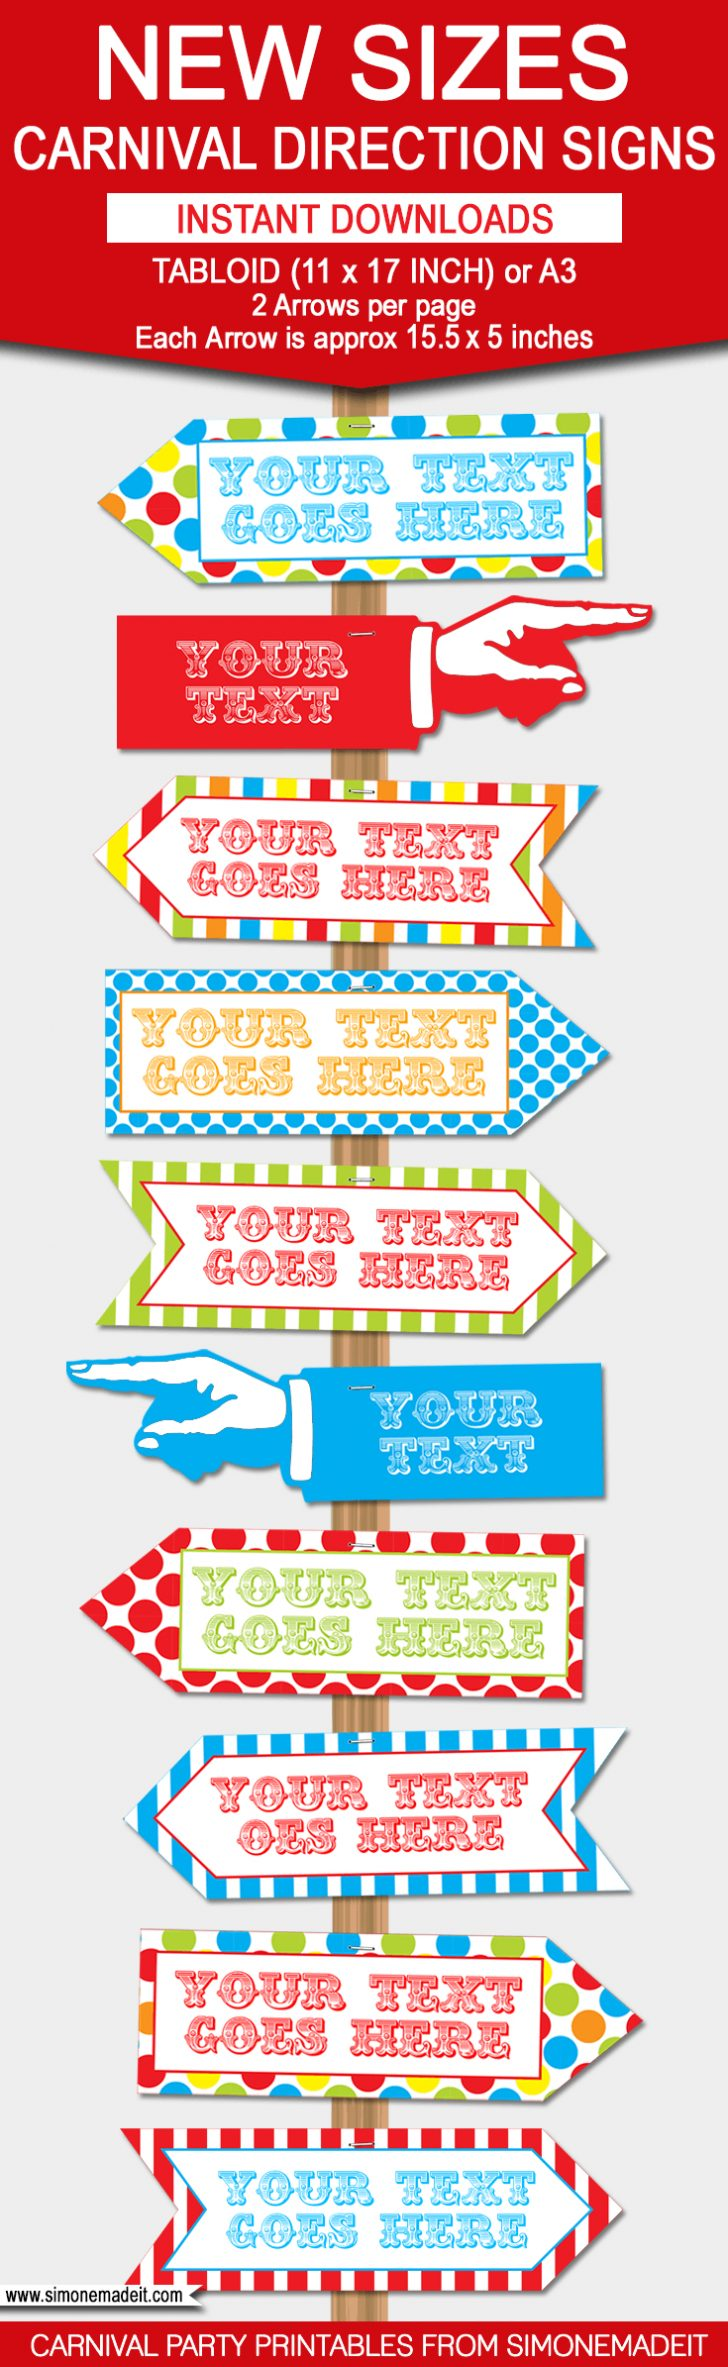 Free Printable Carnival Signs